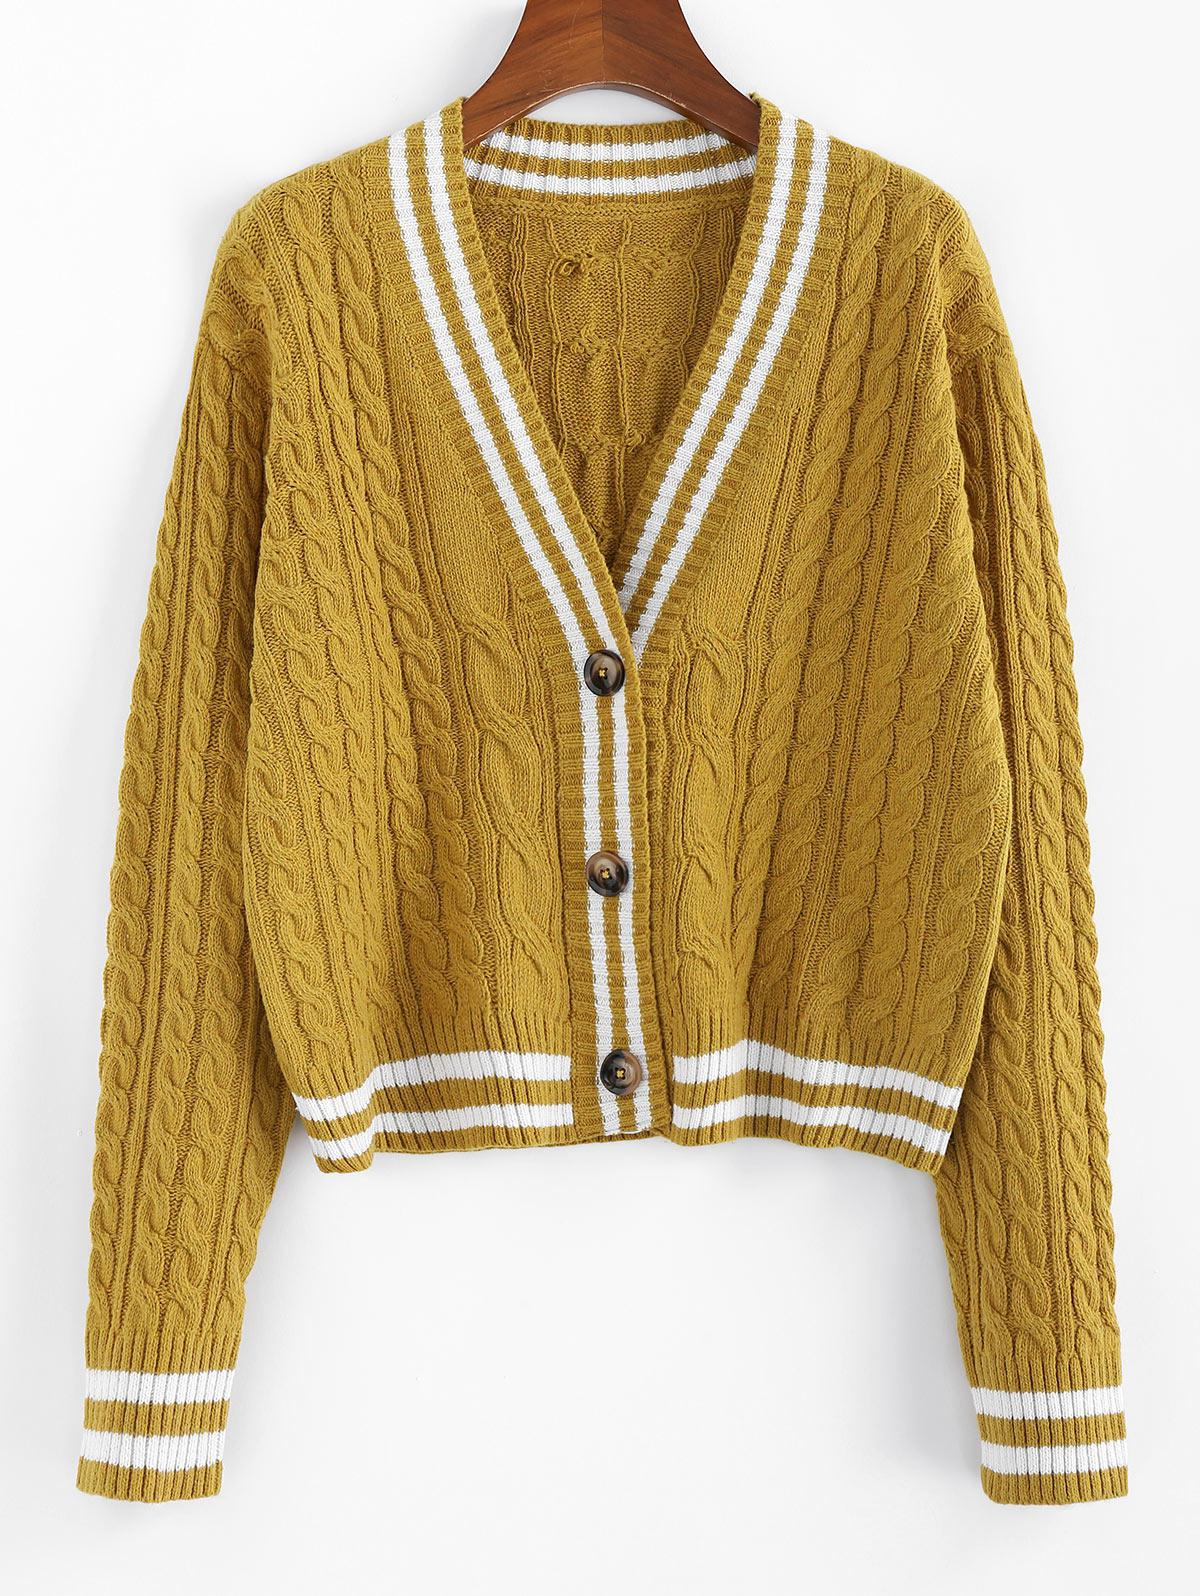 ZAFUL Striped Drop Shoulder Cable Knit Cardigan